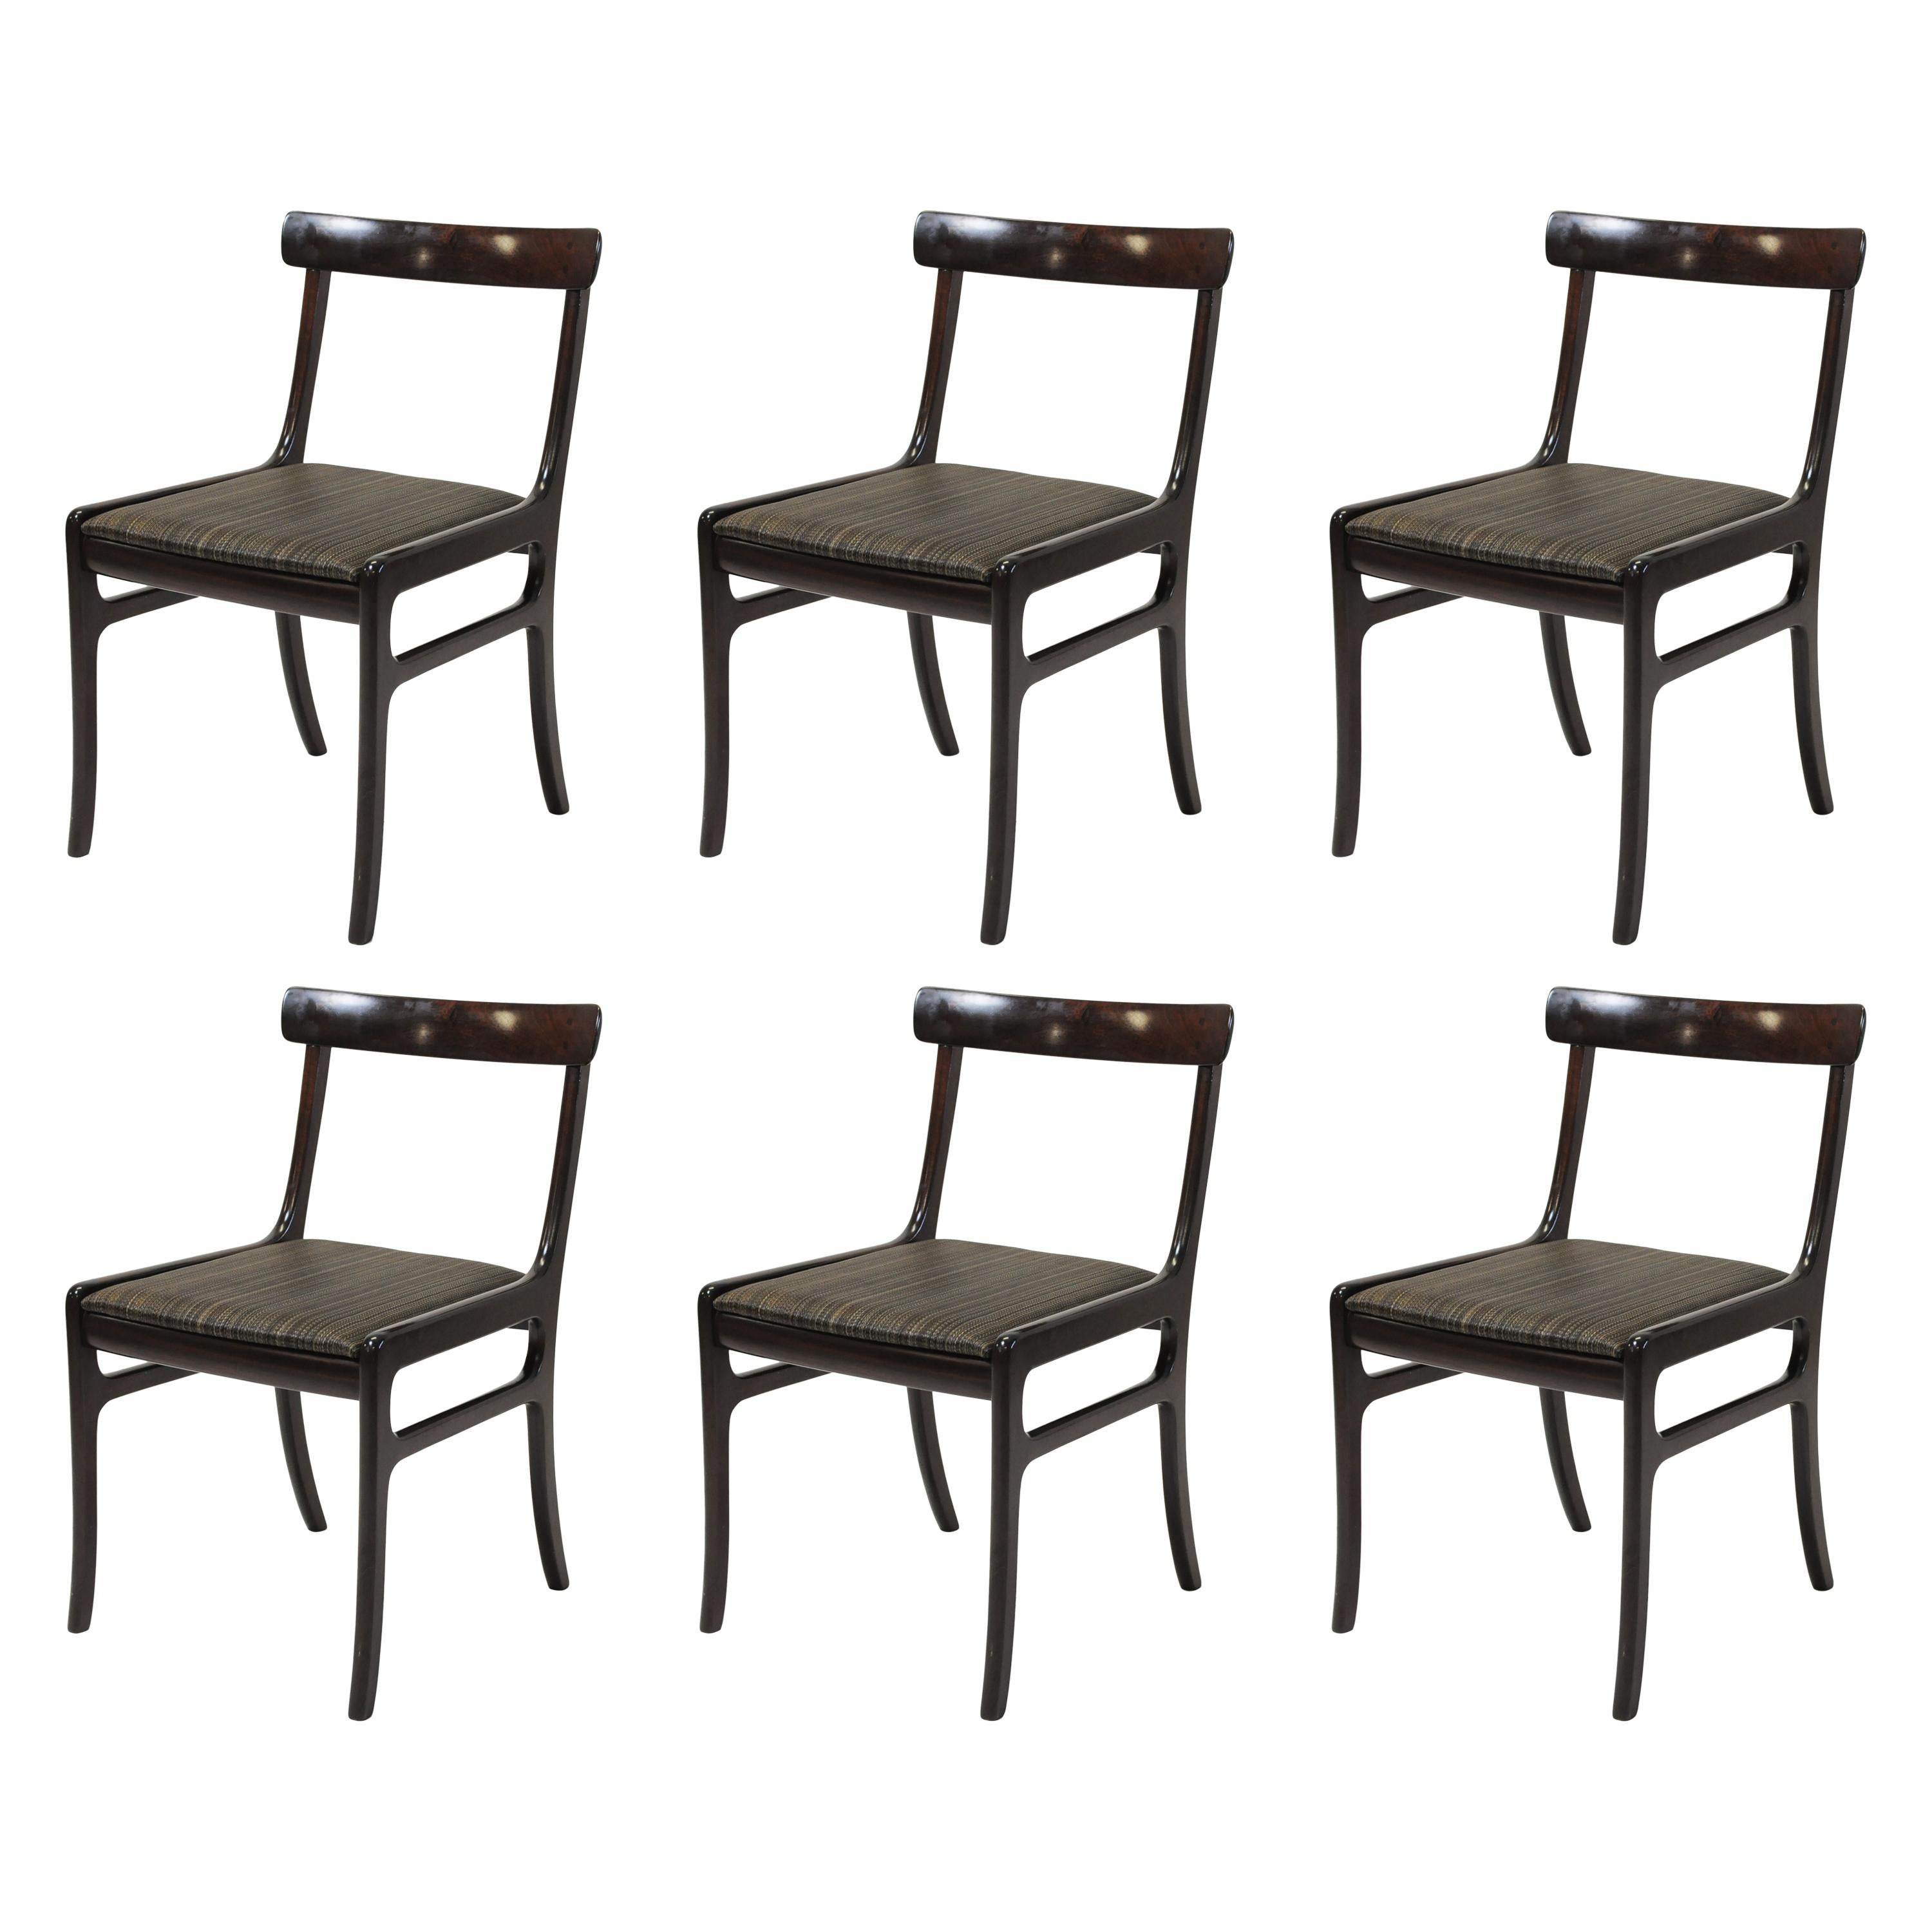 Ole Wanscher set of Six Refinished Mahogany Dining Chairs, Inc. Reupholstery